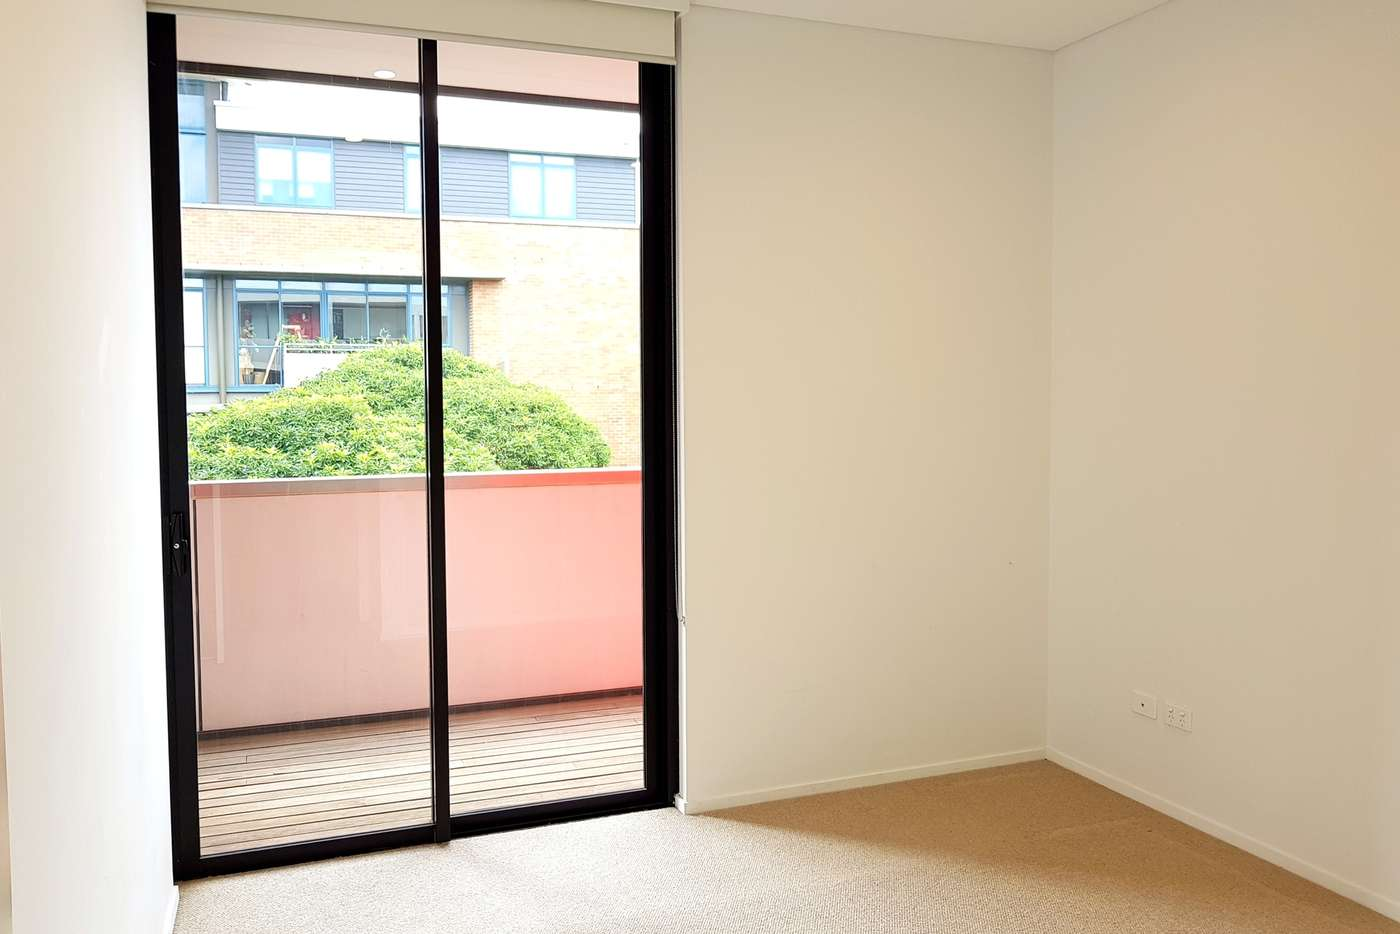 Sixth view of Homely unit listing, 113/5-11 Pyrmont Bridge Road, Camperdown NSW 2050